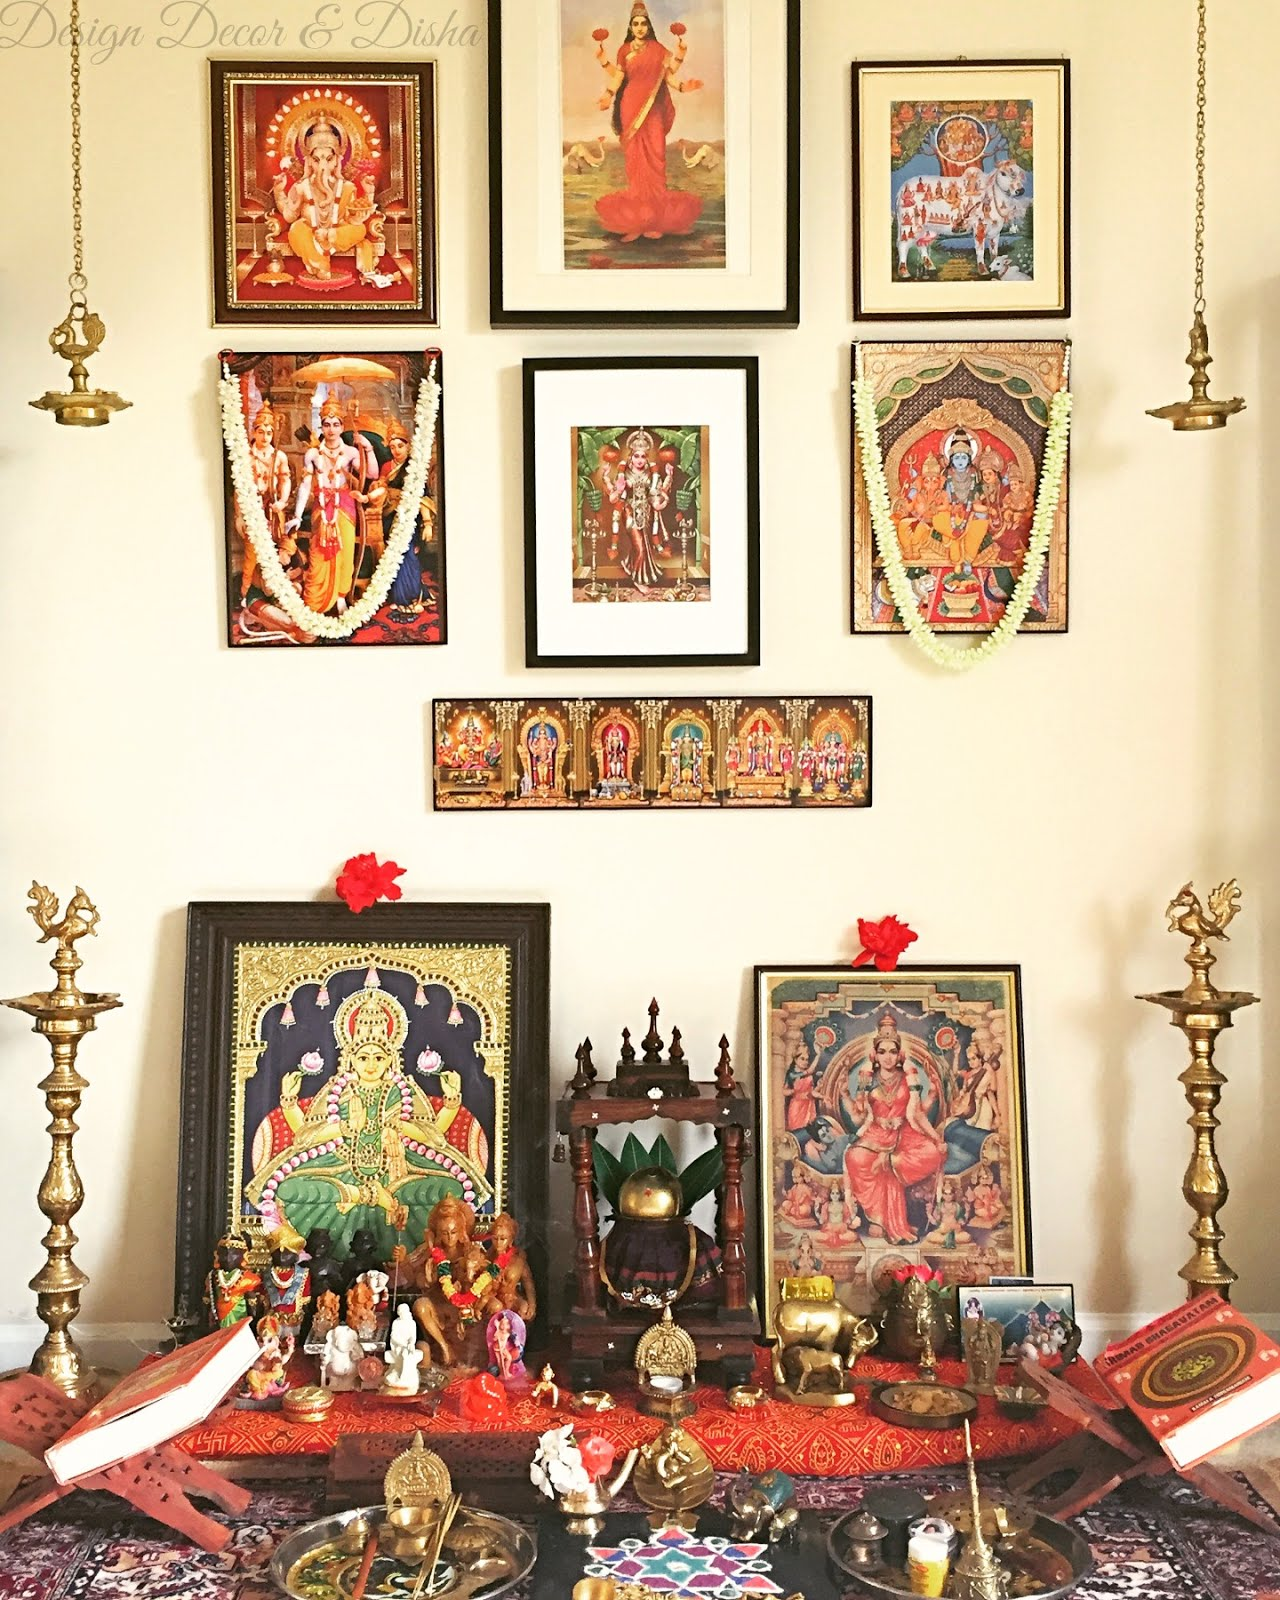 An Indian Design Decor Blog Home Tour Chitra Seetharaman: An Indian Design & Decor Blog: Wall Stories: Traditional Indian Wall Decor